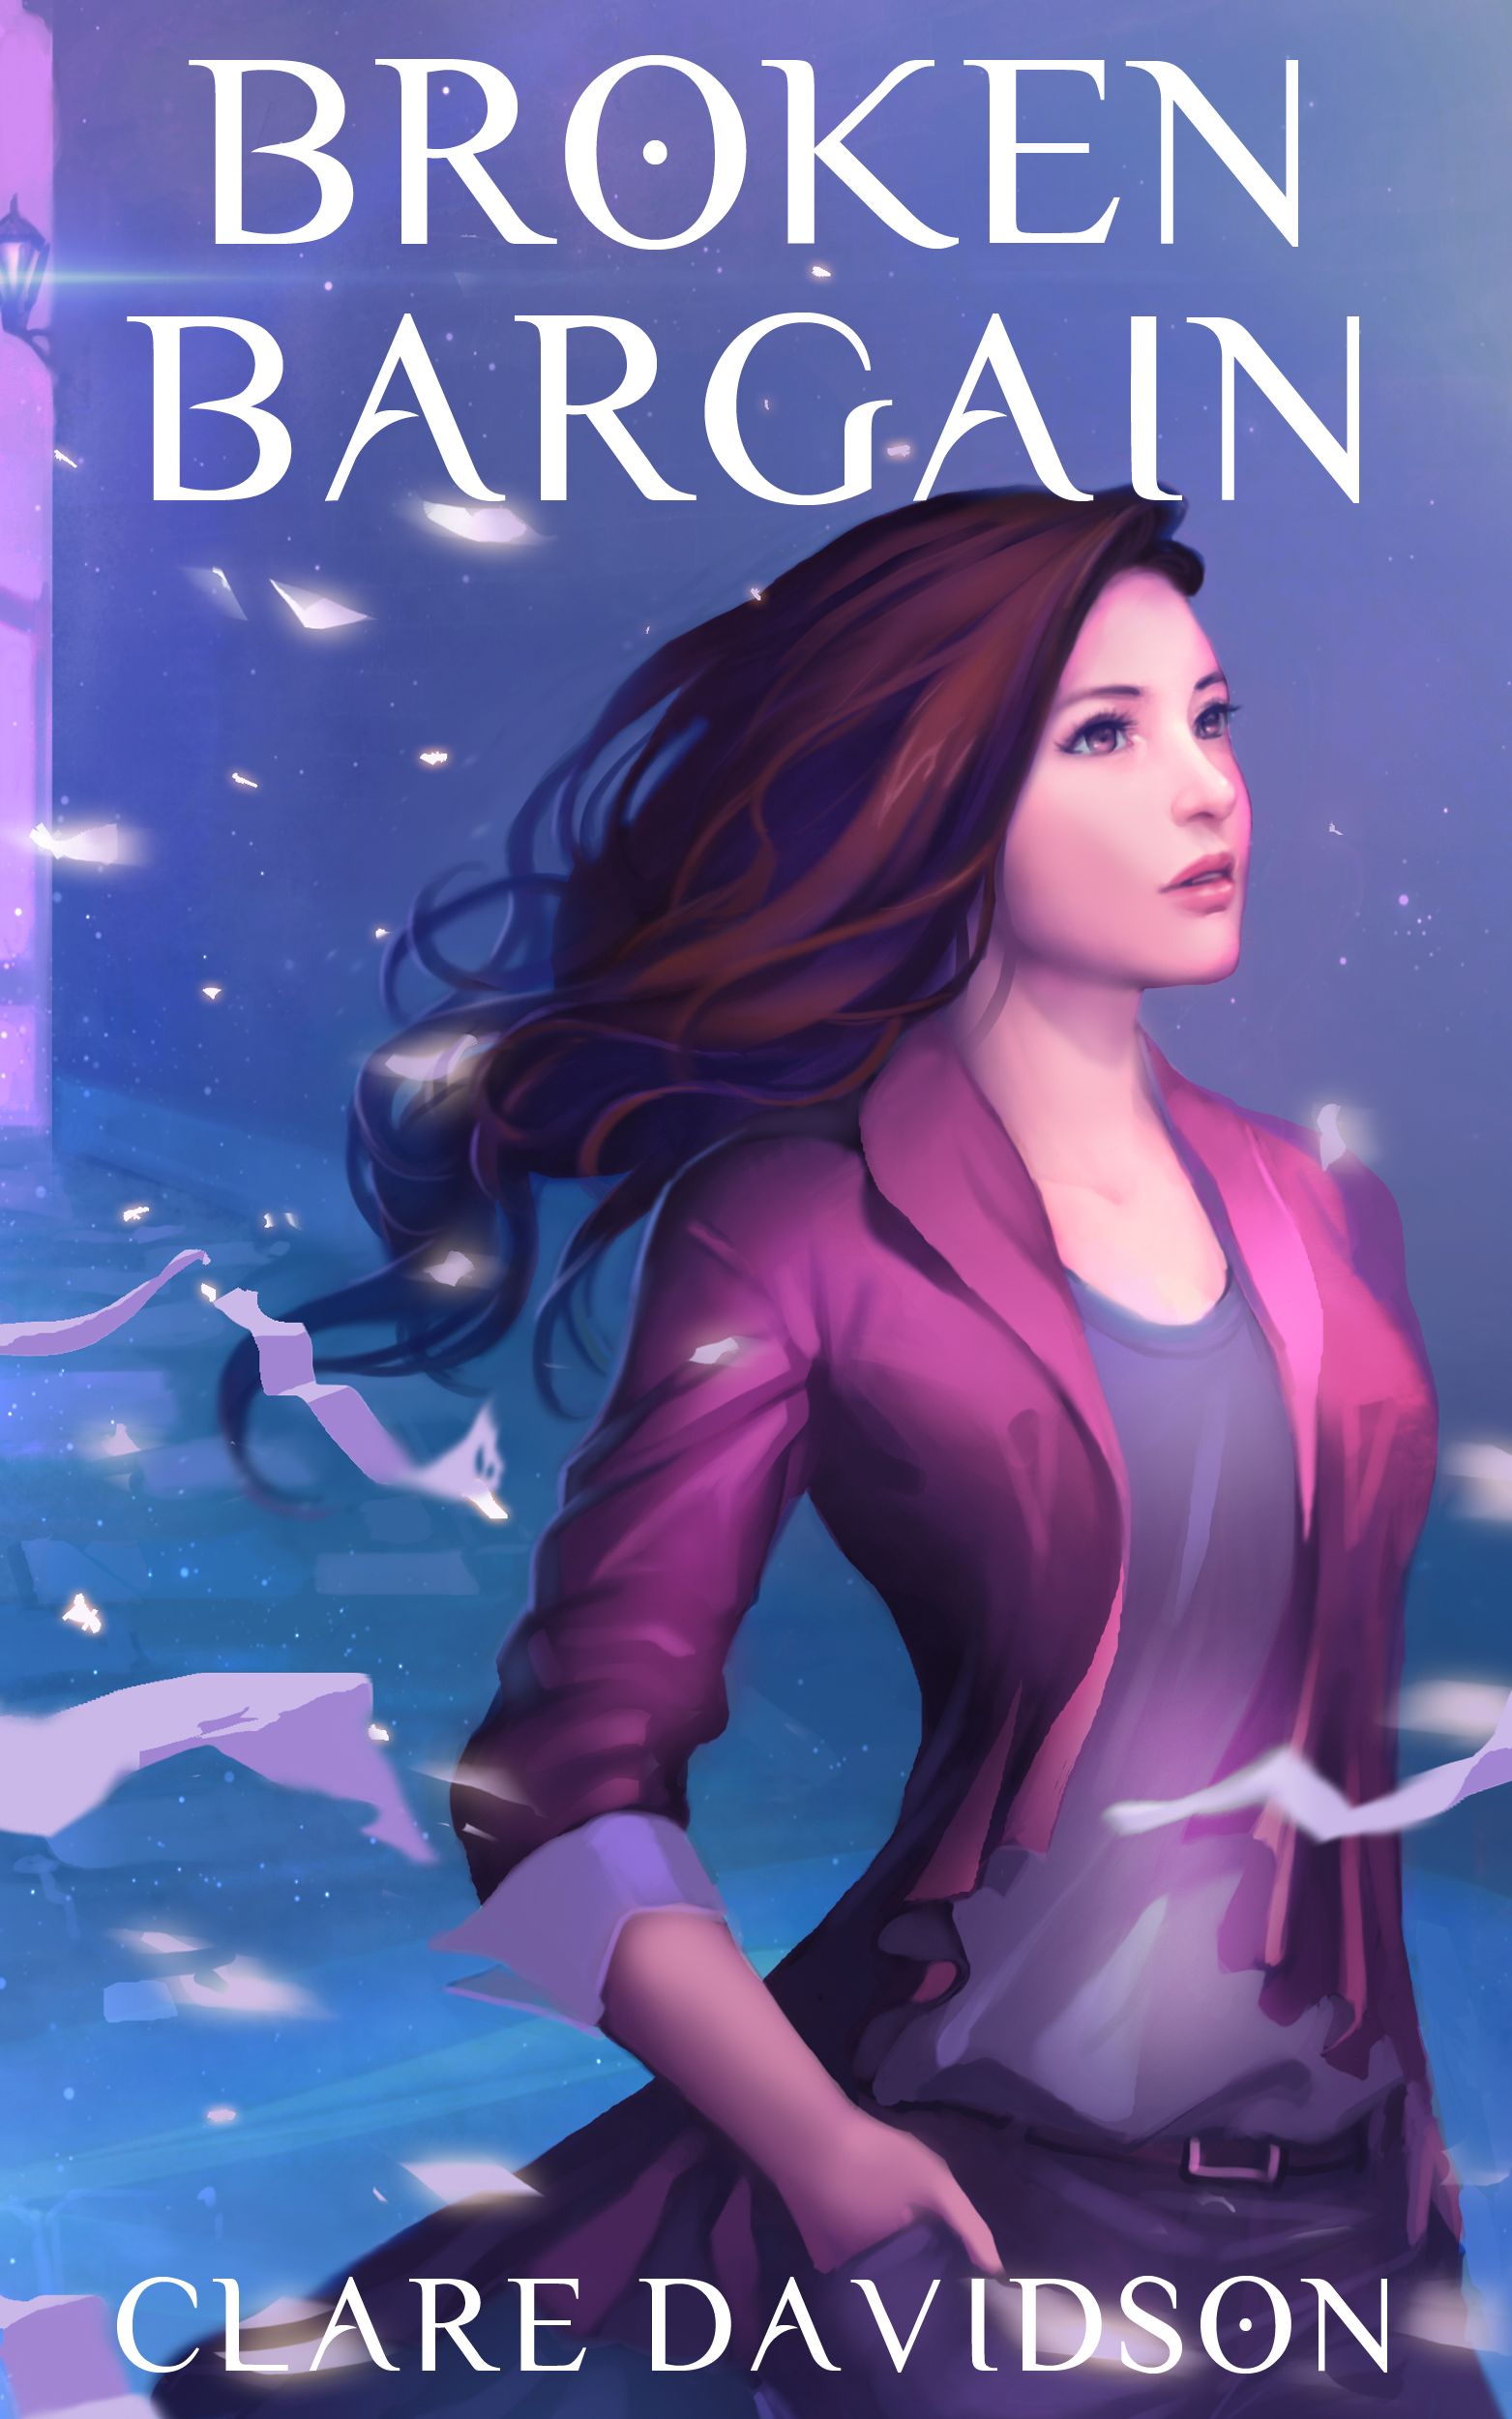 Broken Bargain by Clare Davidson